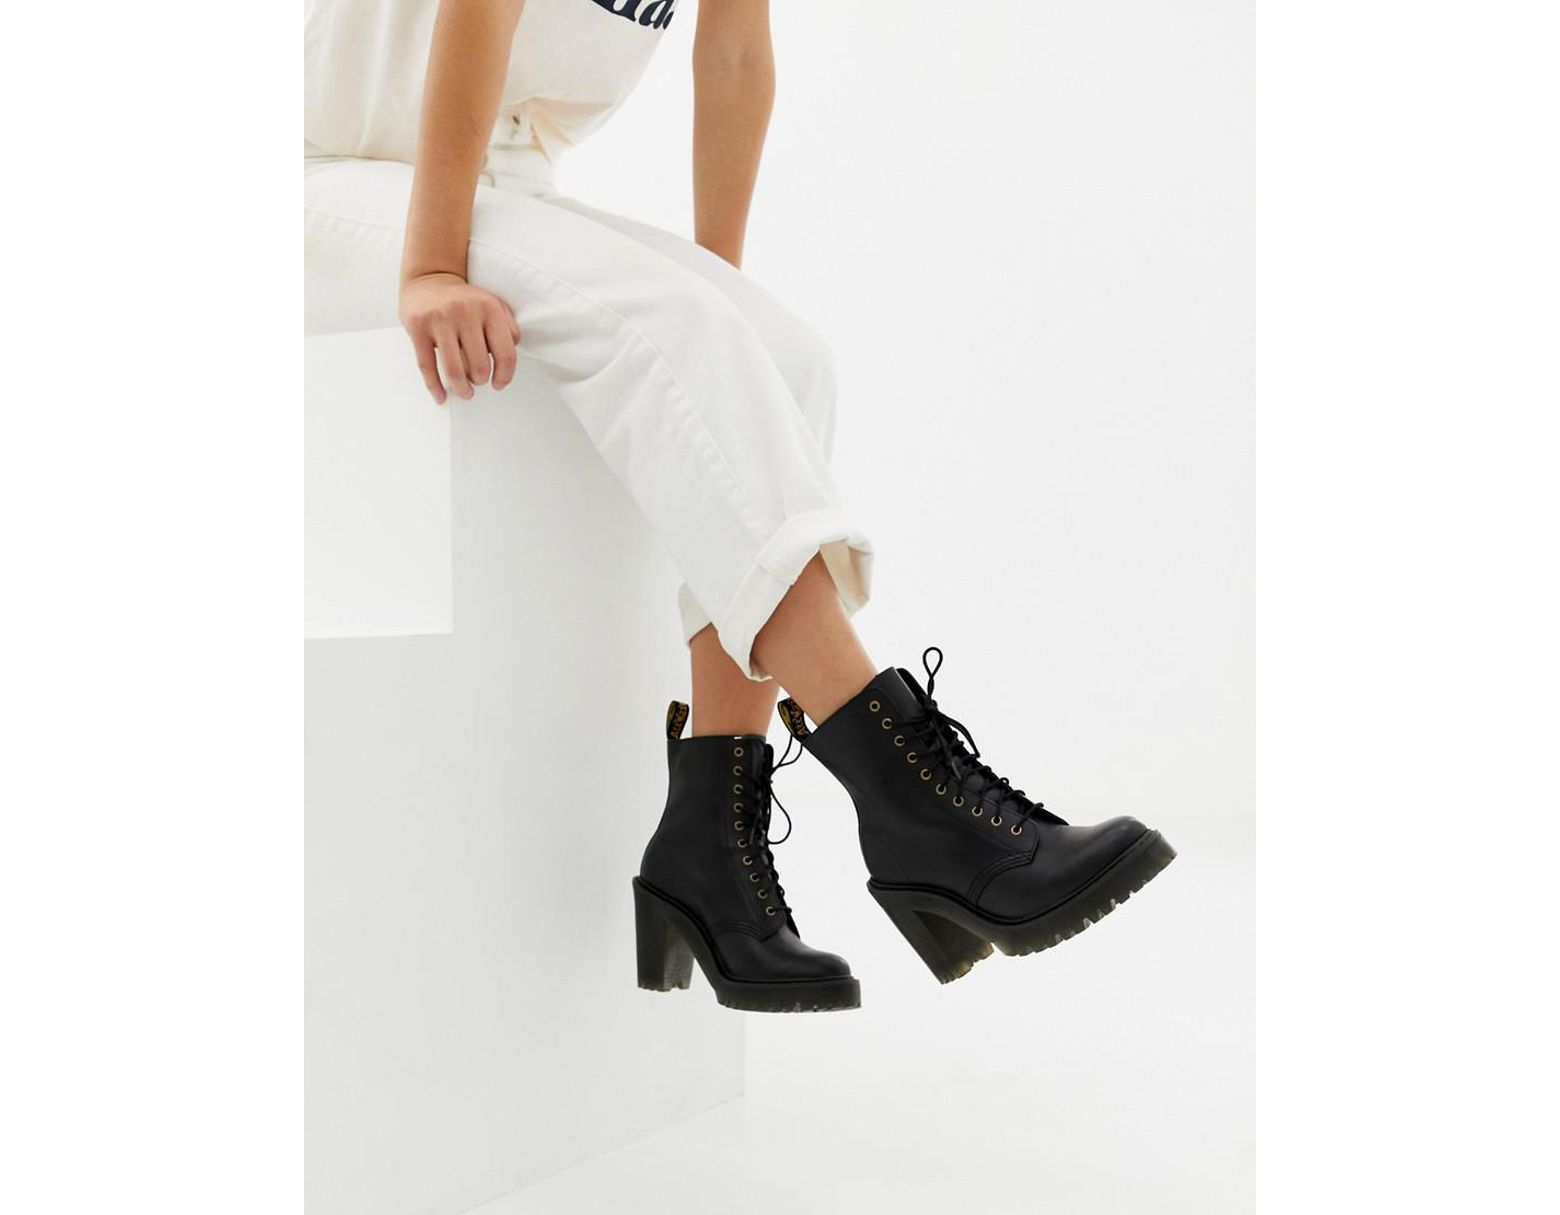 fd3d5b69a Dr. Martens Kendra Black Leather Heeled Ankle Boots in Black - Lyst